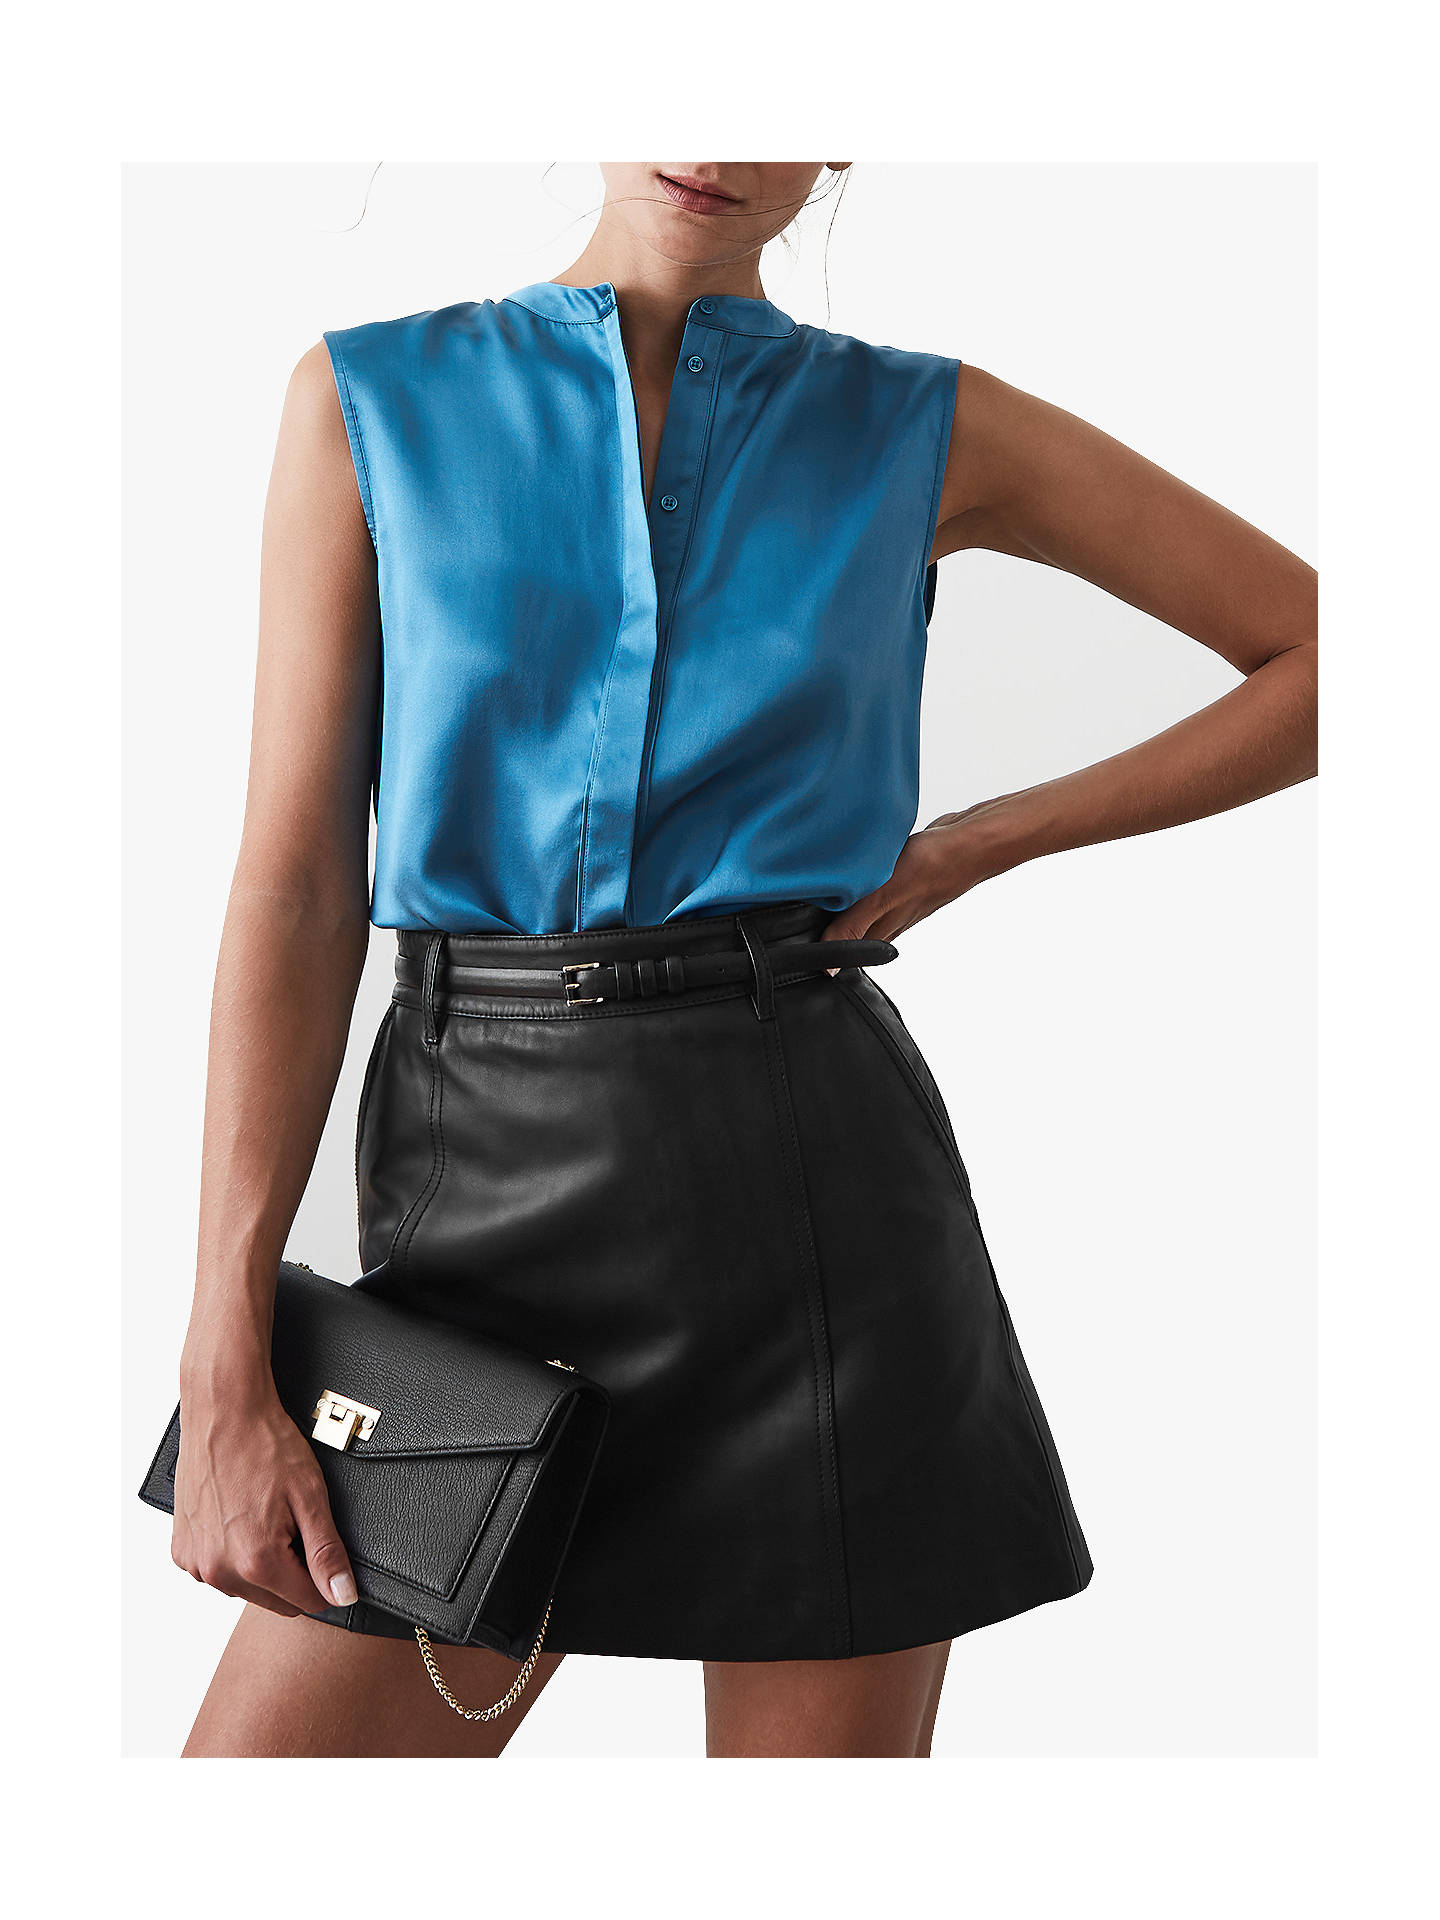 bf7673bbbeb9bf ... Buy Reiss Lila Silk Sleeveless Placket Top, Blue, 6 Online at  johnlewis.com ...